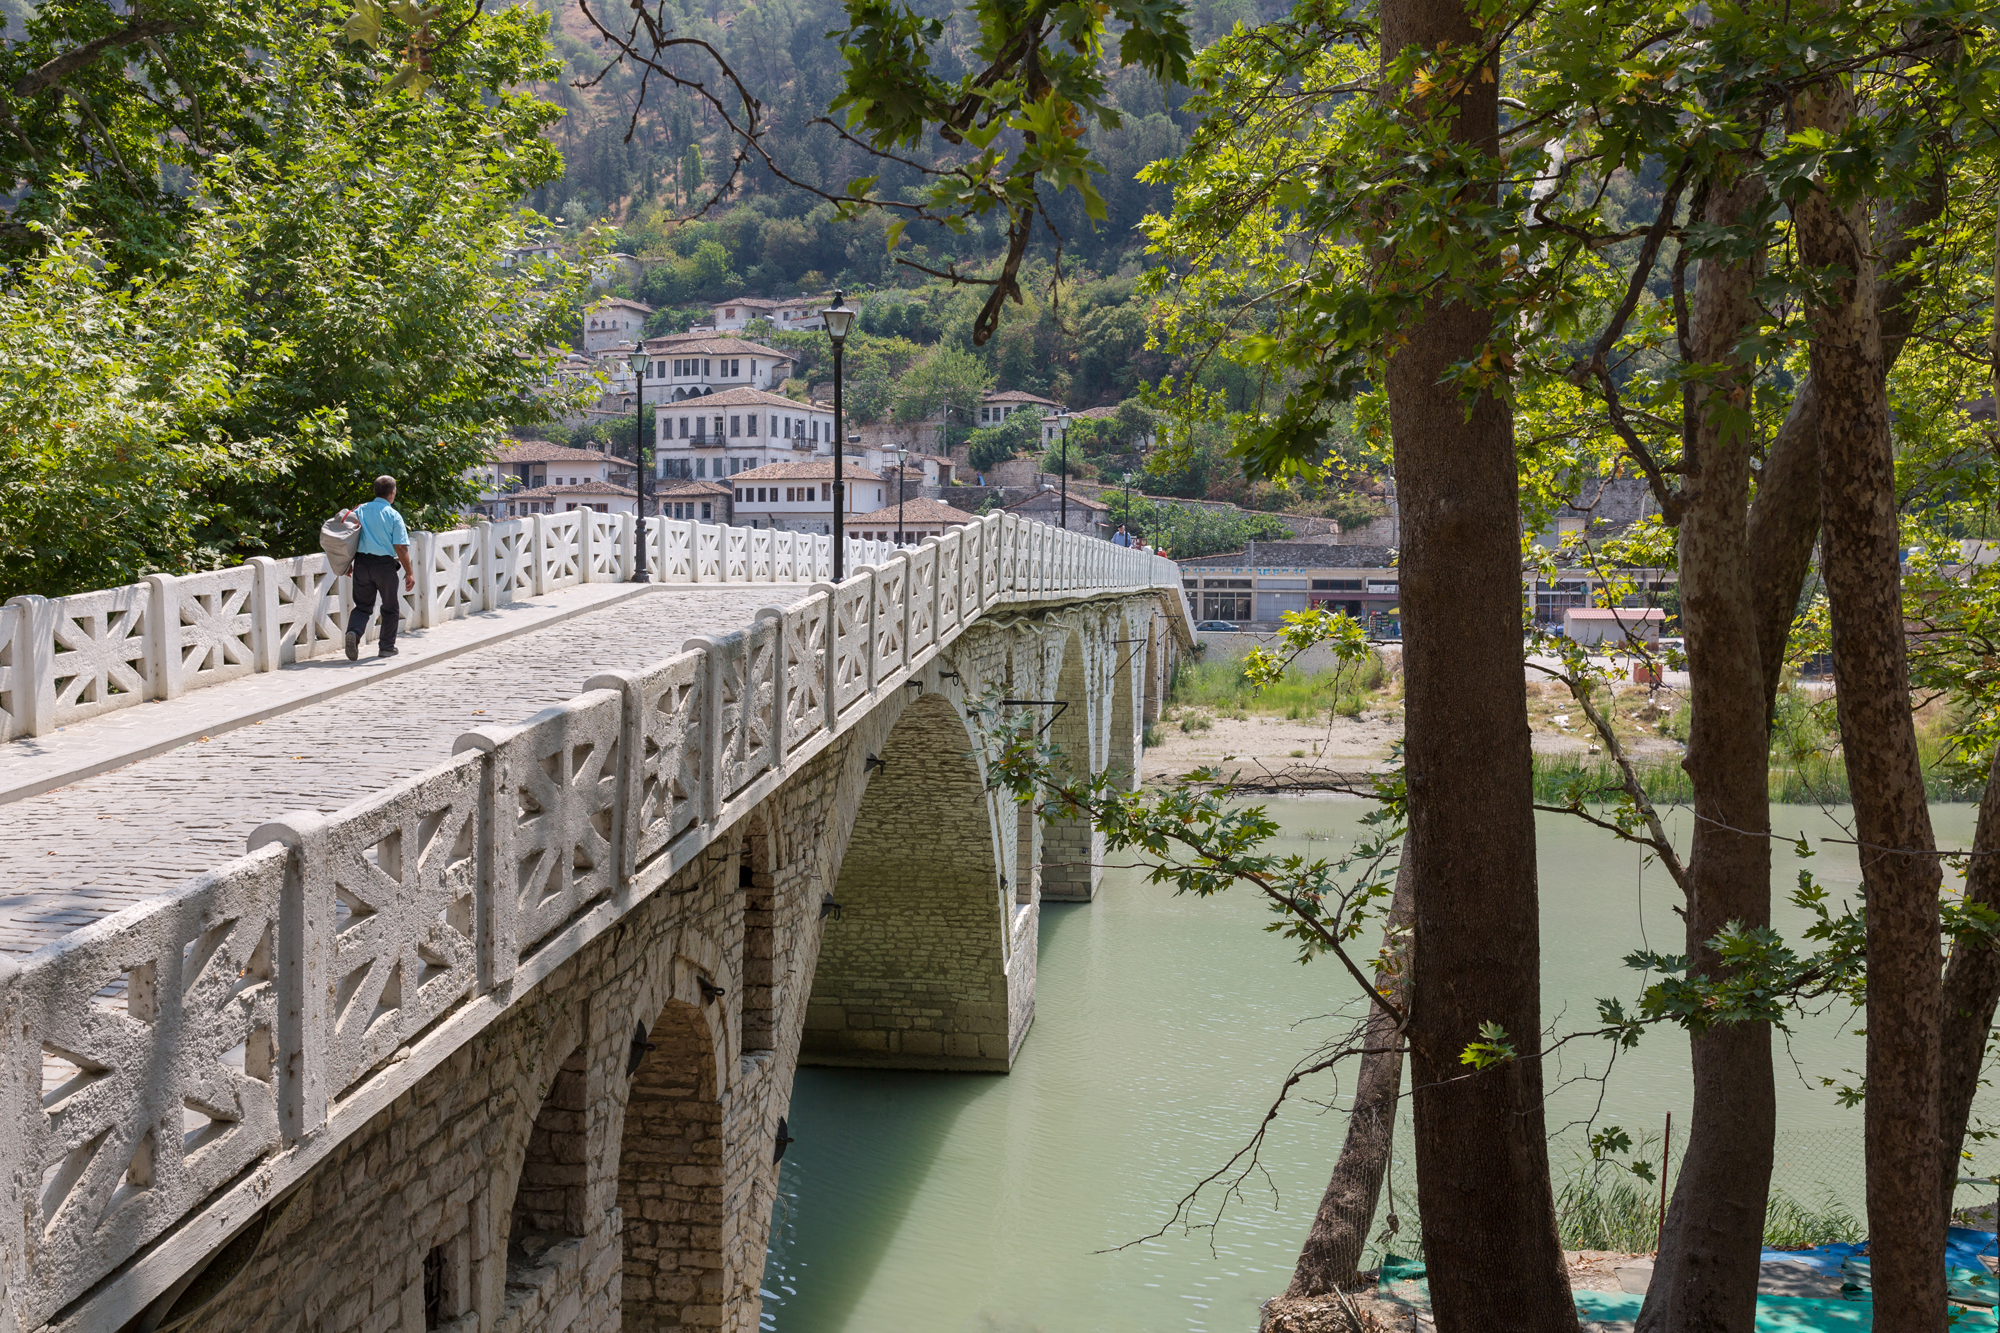 A bridge in Albania.